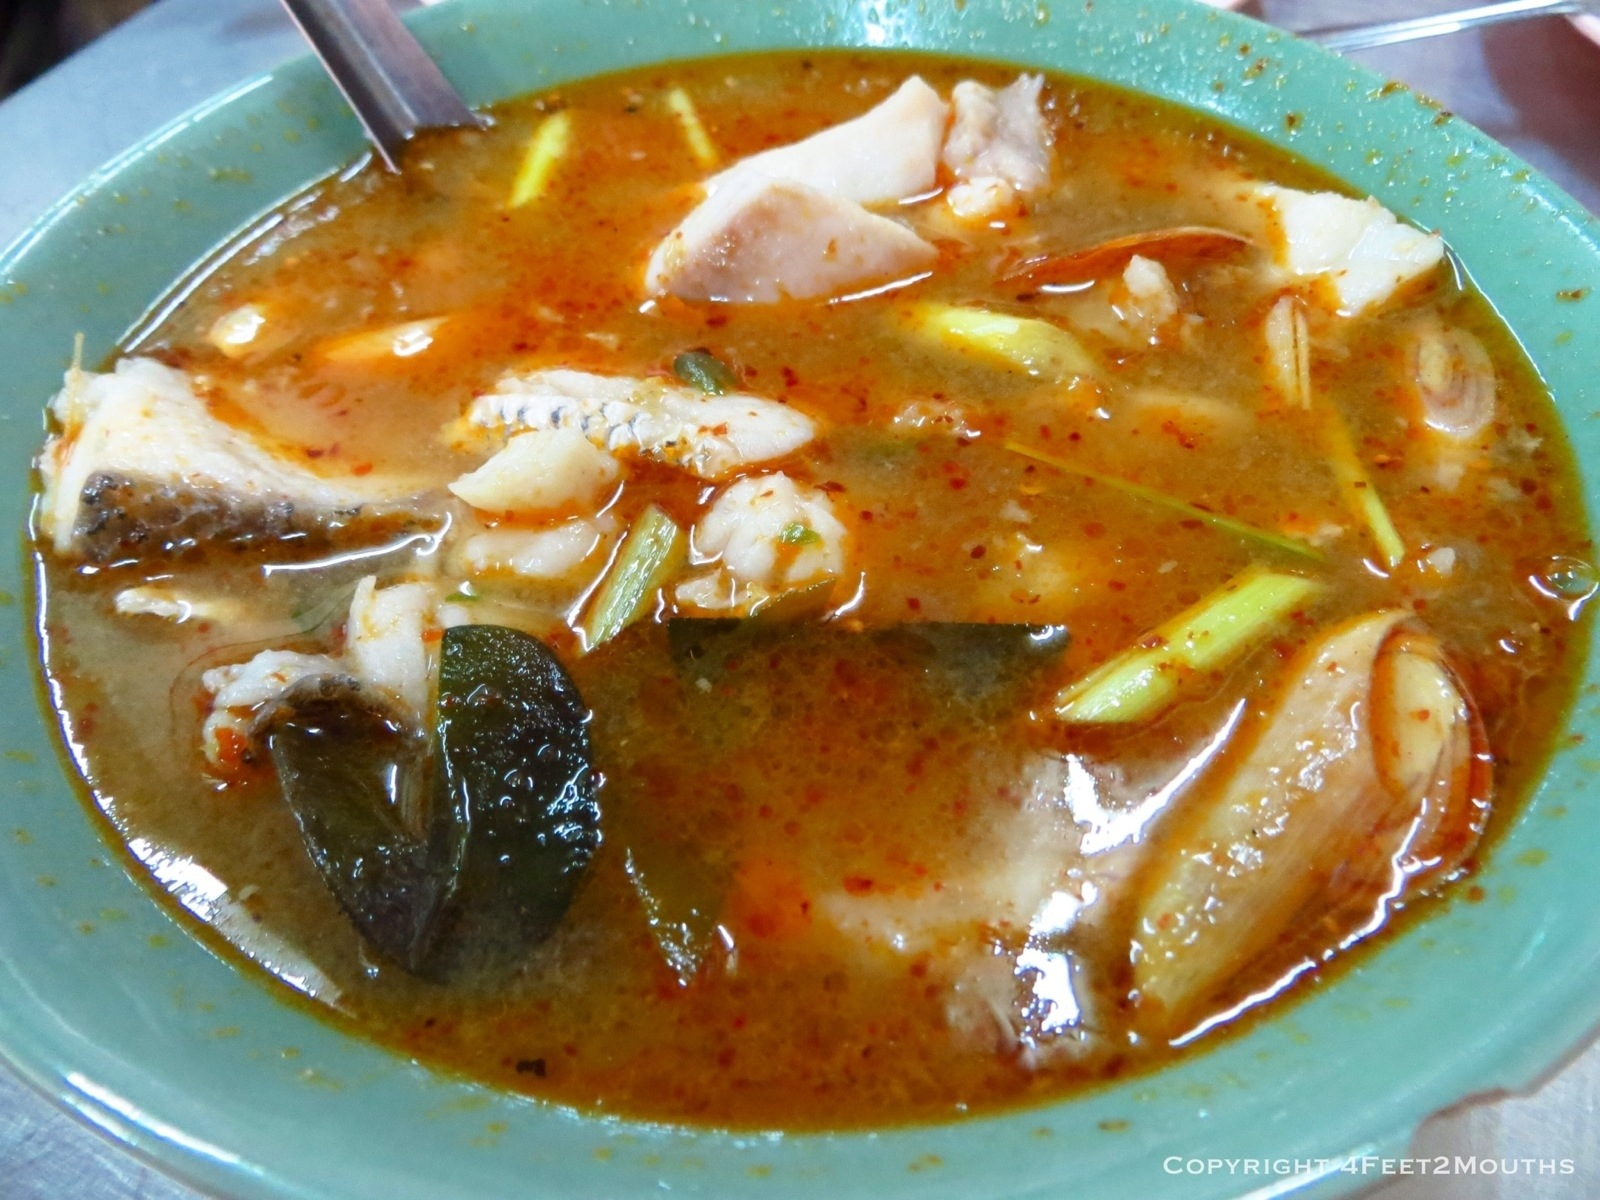 One night in bangkok by nathan 4 feet 2 mouths for Thai fish soup